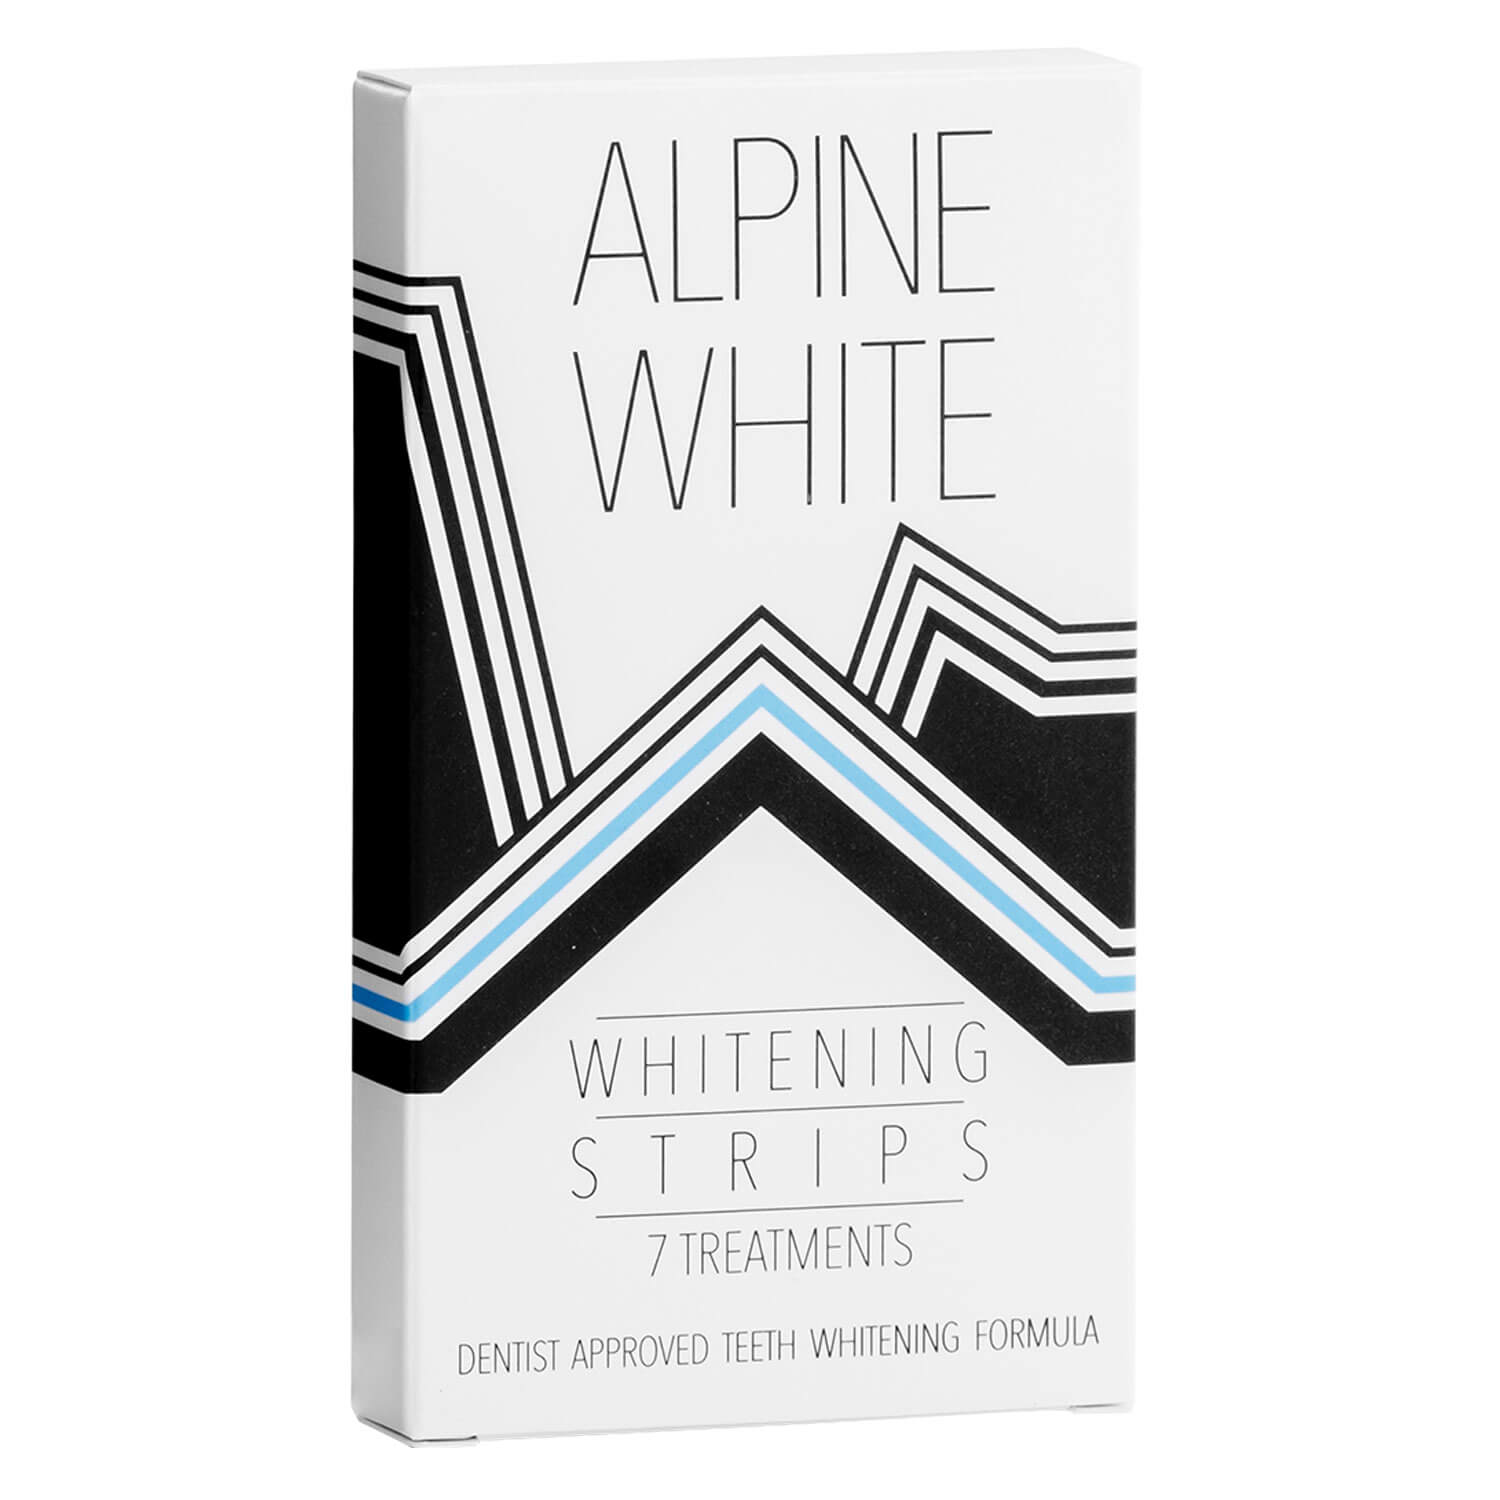 ALPINE WHITE - Whitening Strips